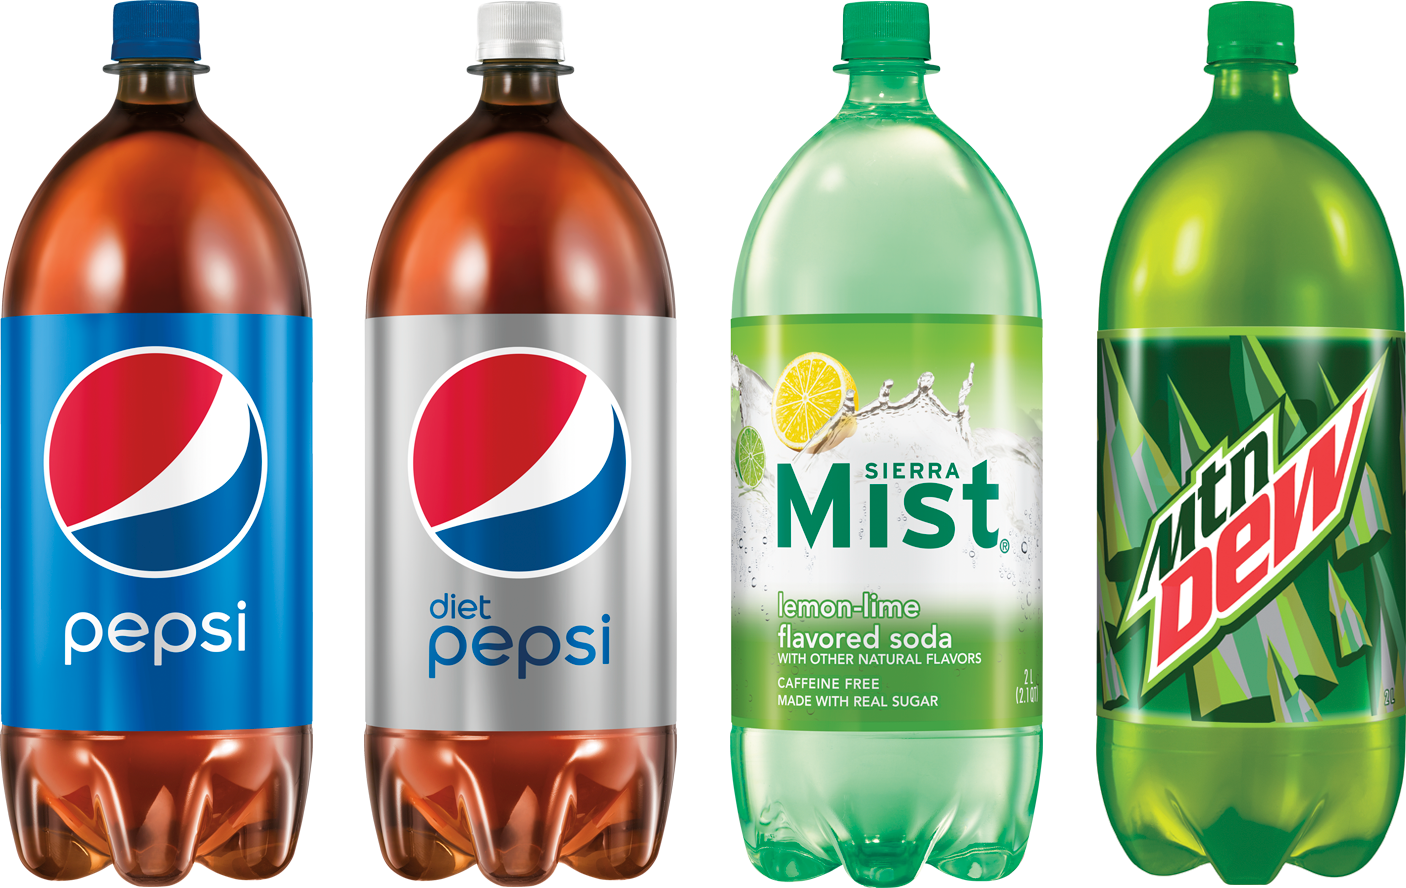 Pepsi Products in 2 Liter Bottles